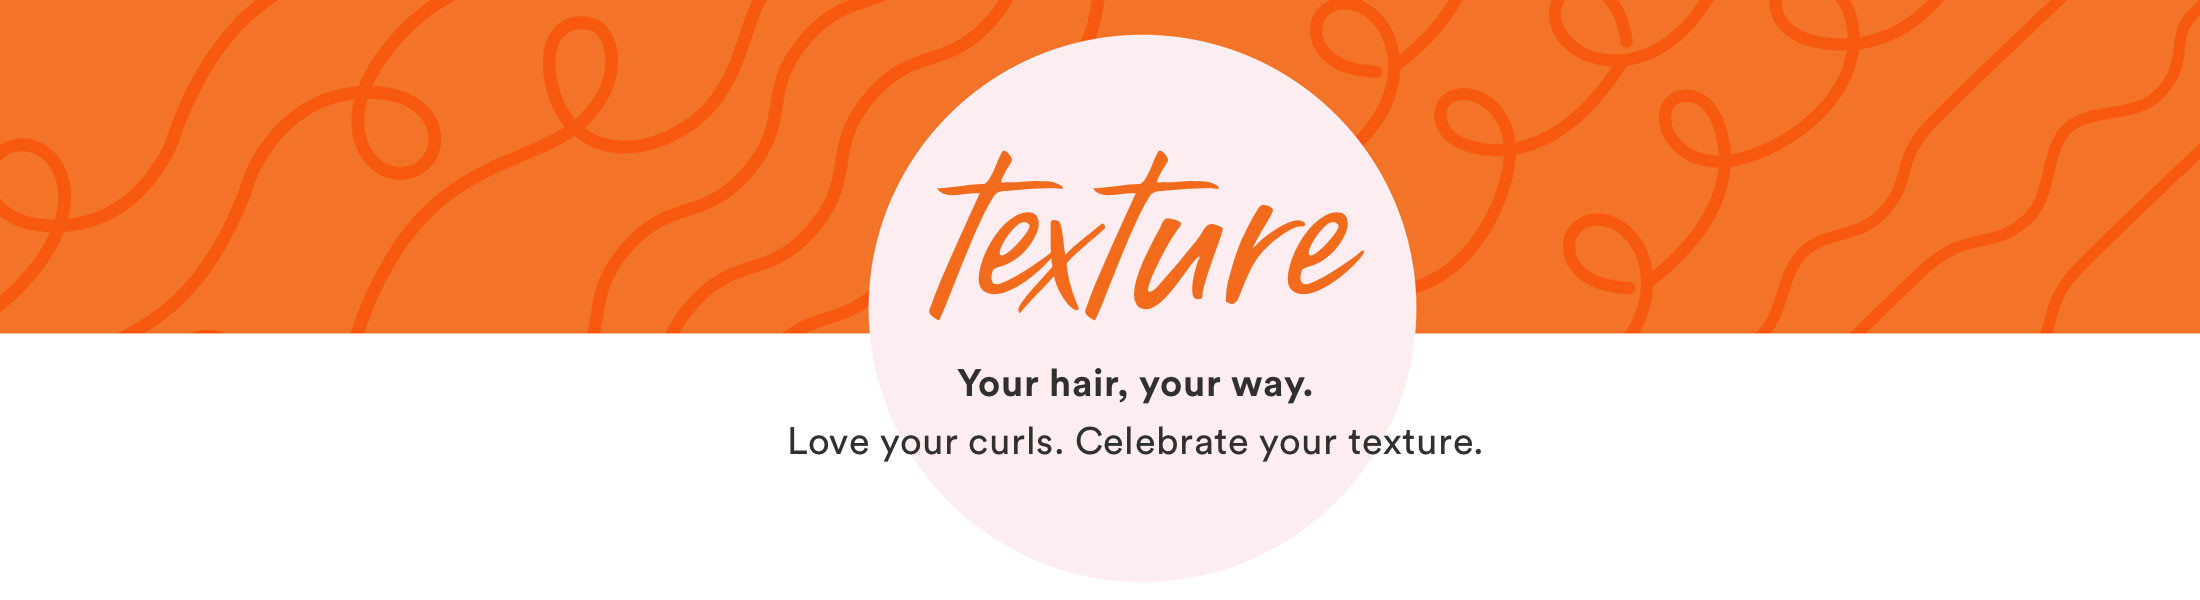 Products for Curly Textured Hair Types